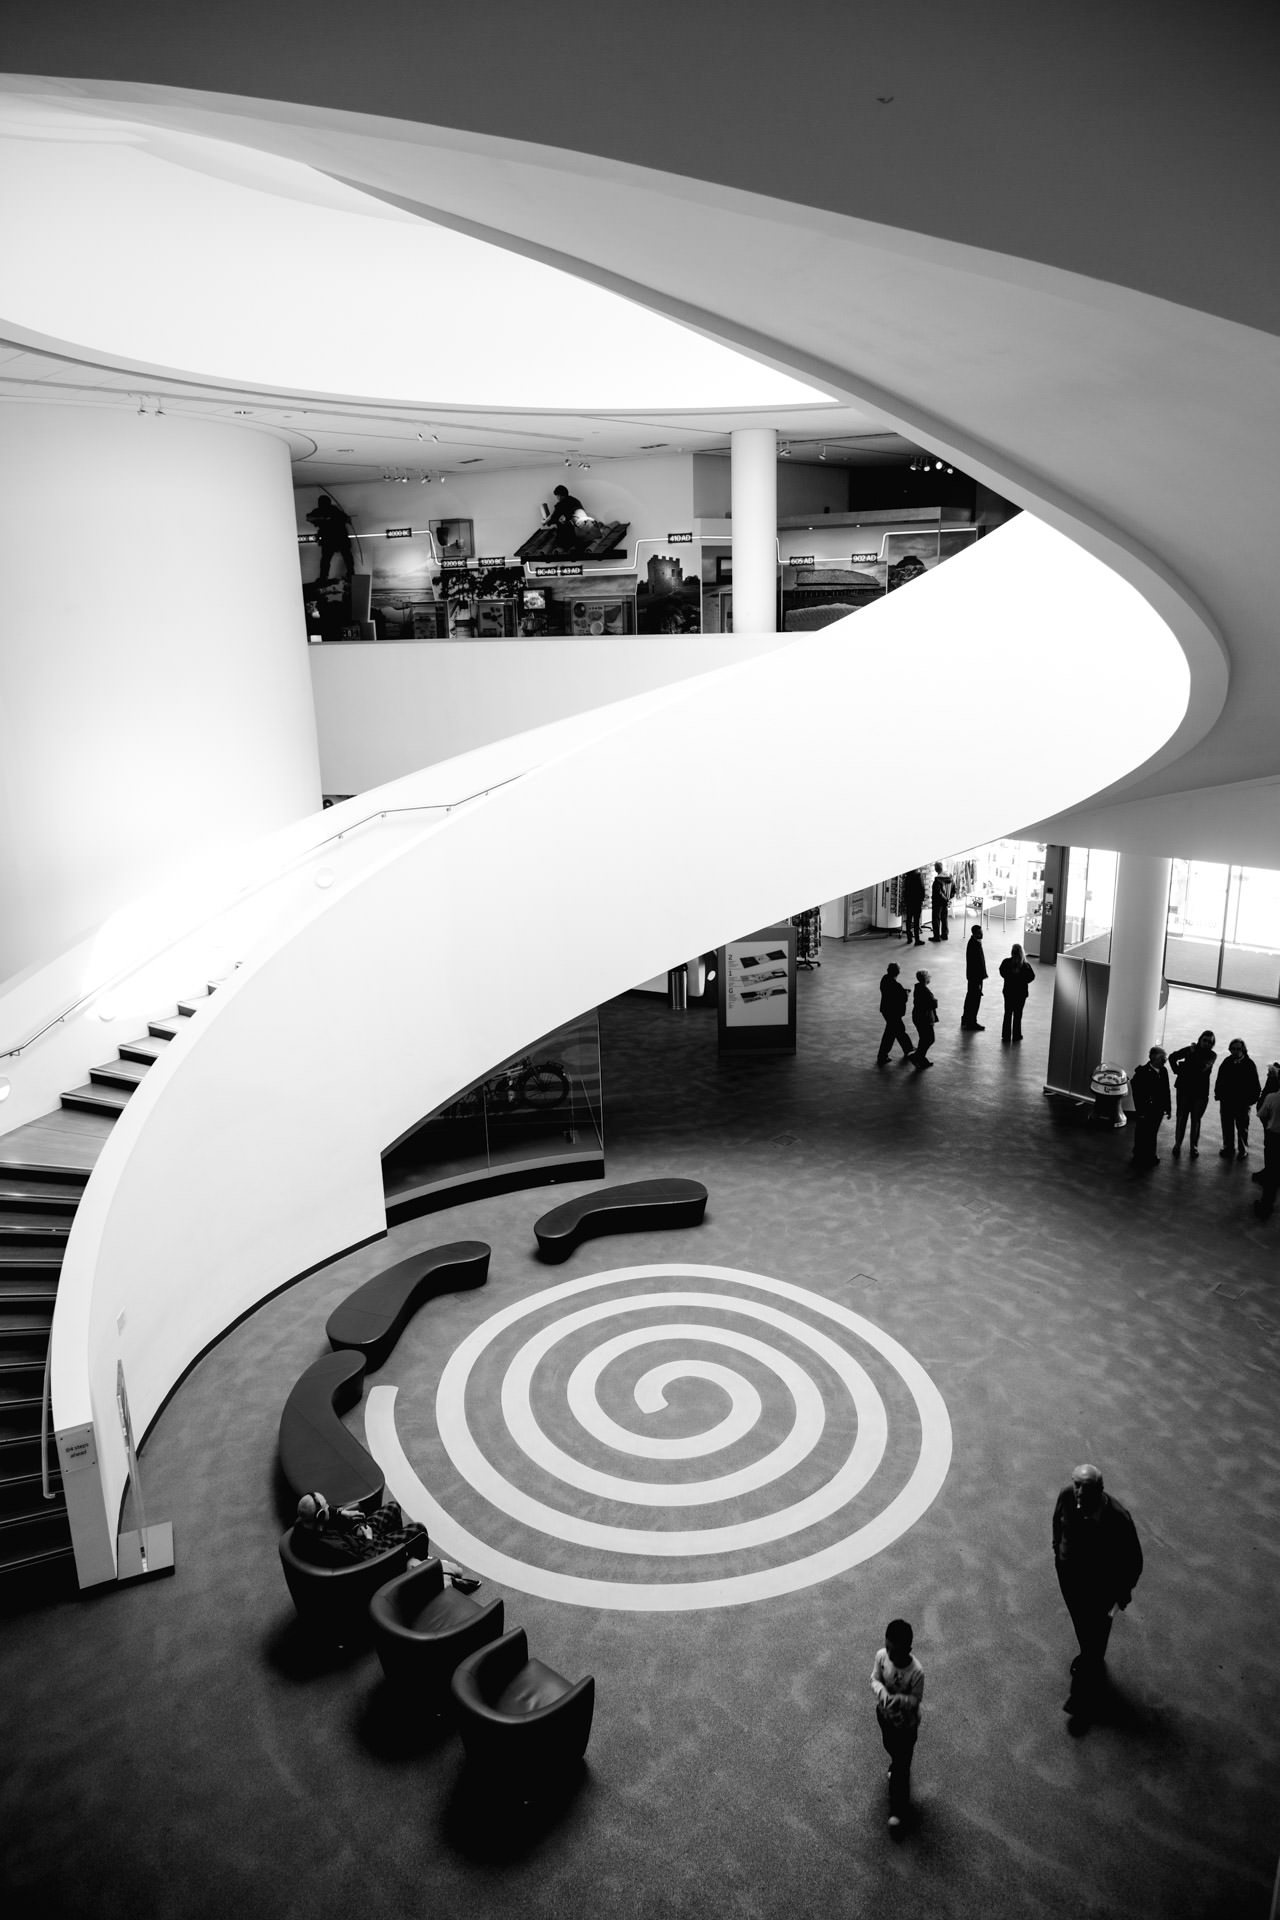 June - After checking out an exhibition at the  Museum of Liverpool  I took this photo of the building's spiral staircase. I was pleased with this and the way the people at the bottom corner completed the spiral.